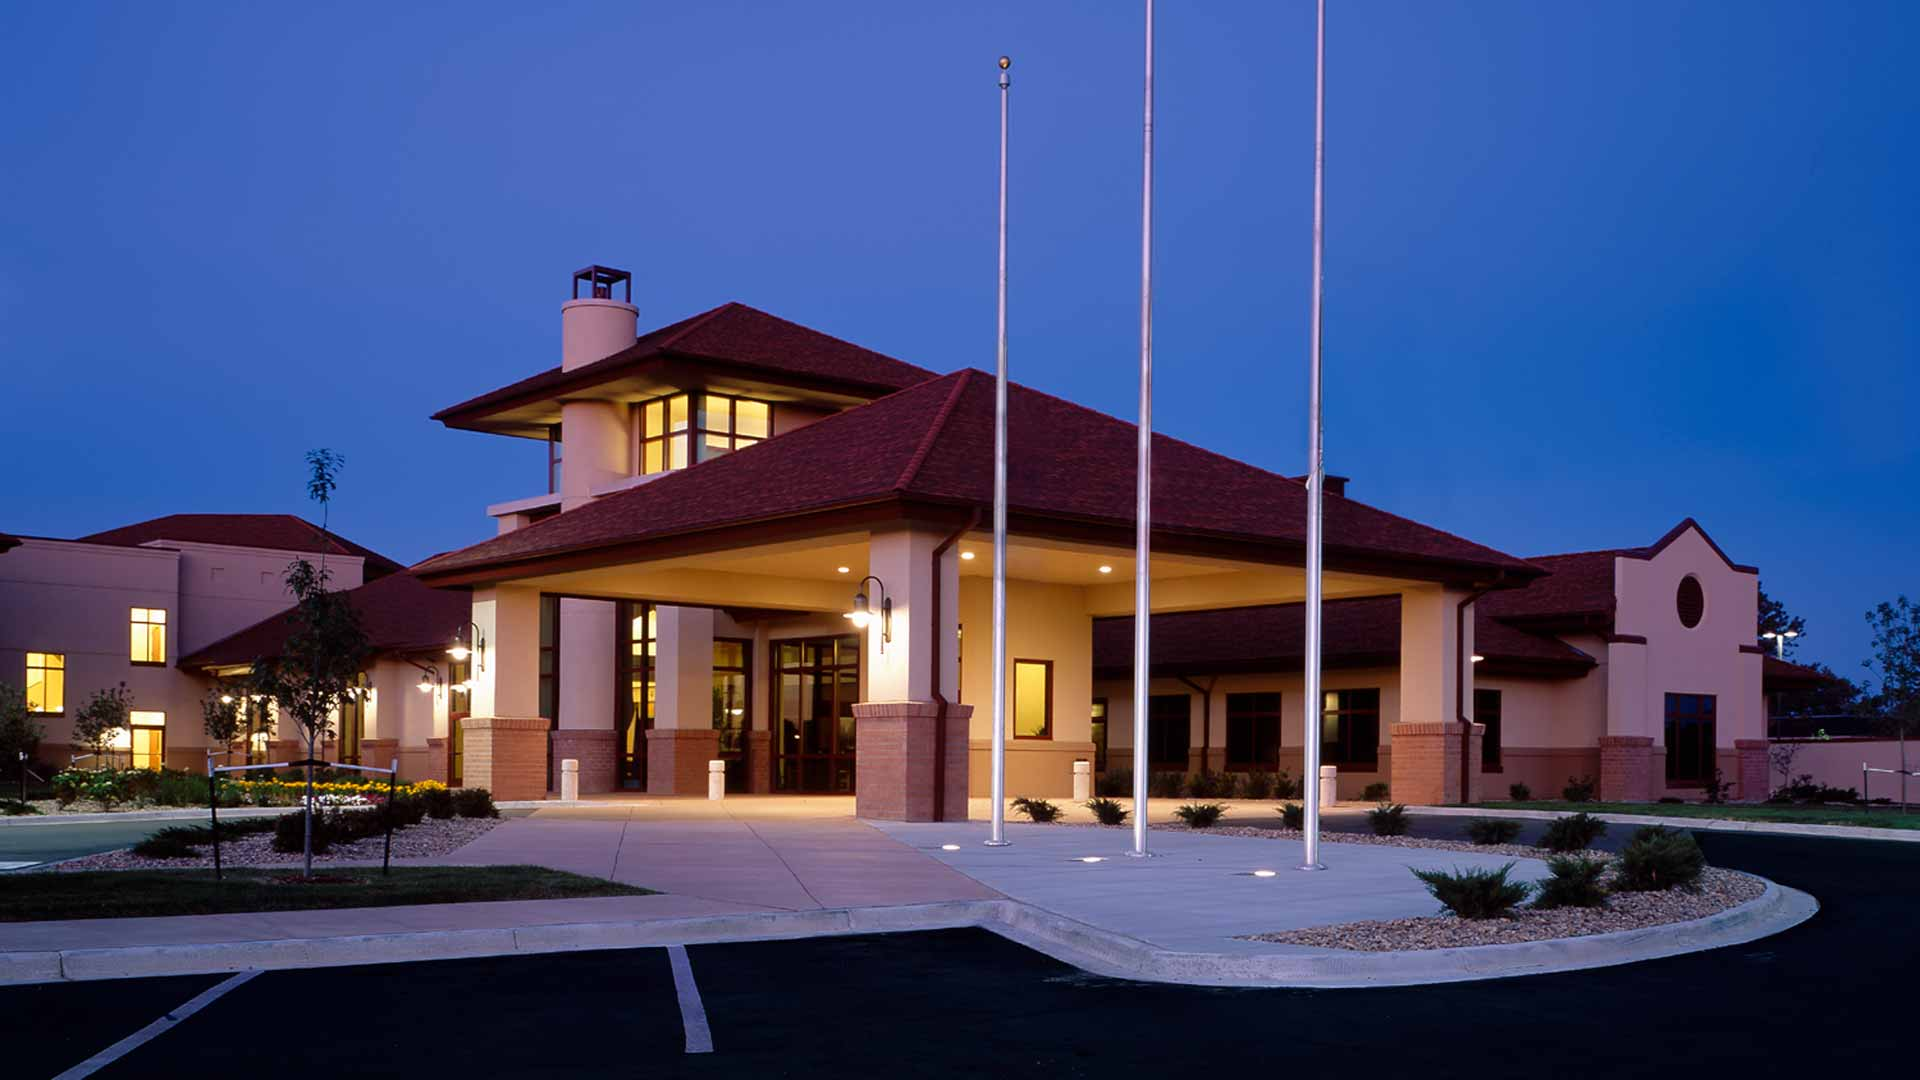 Colorado State Veterans Home